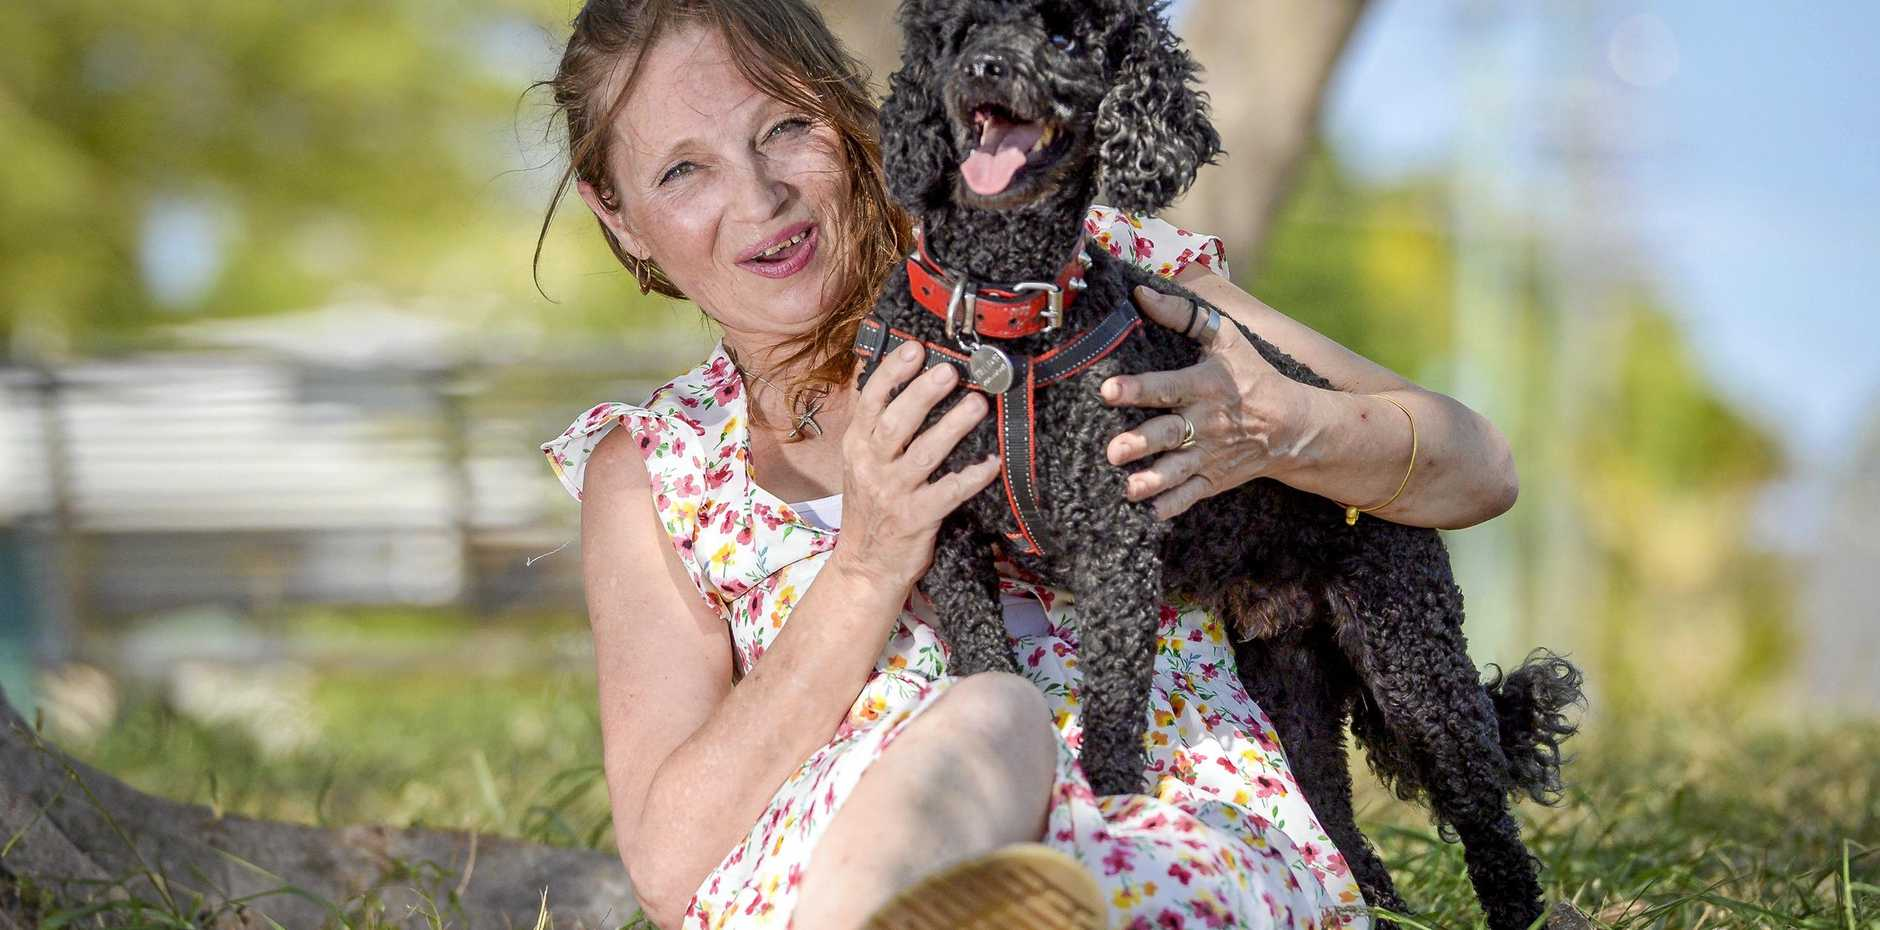 POODLE CLUB: Cat Lee, who has recently moved to Gladstone with her poodle Billy Bob, and is hoping to start a group for the animal lovers.